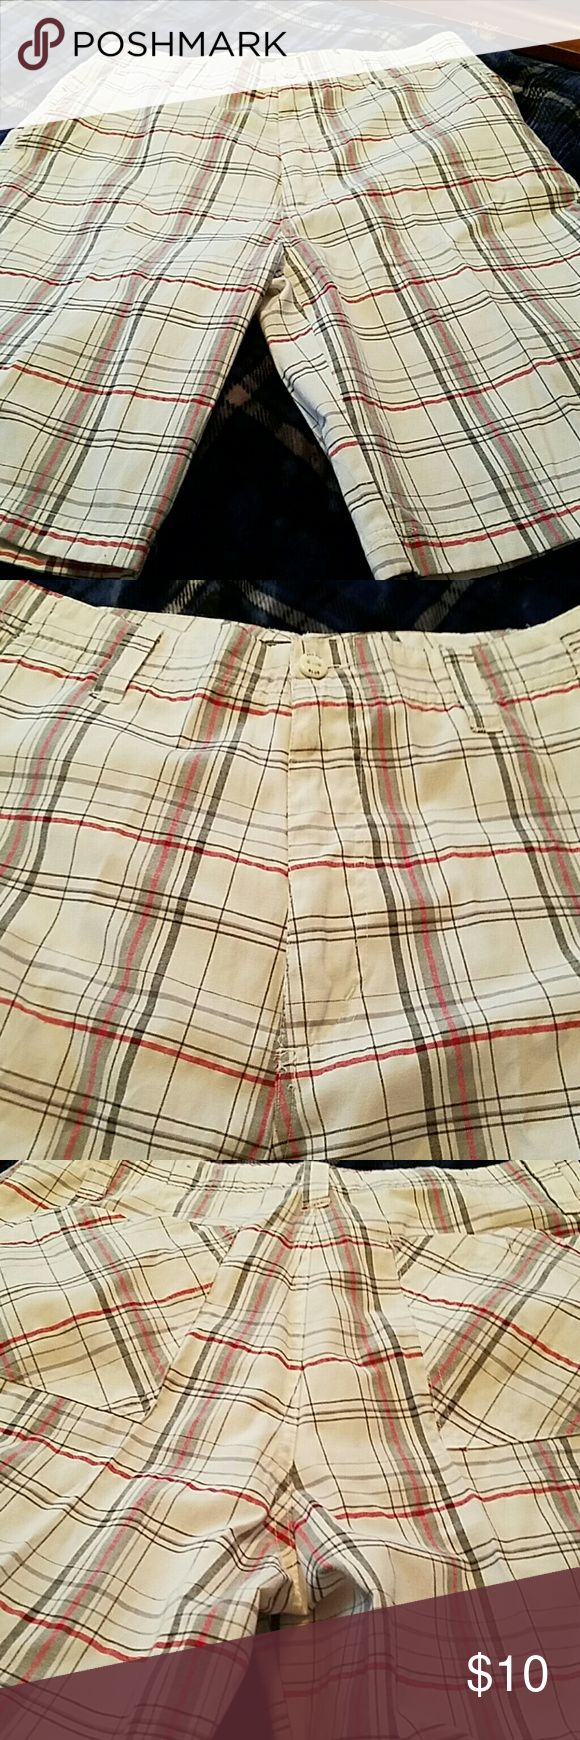 Men's long shorts White, red and gray plaid long shorts....11 inch inseam...brand new Pacific Blue Shorts Flat Front